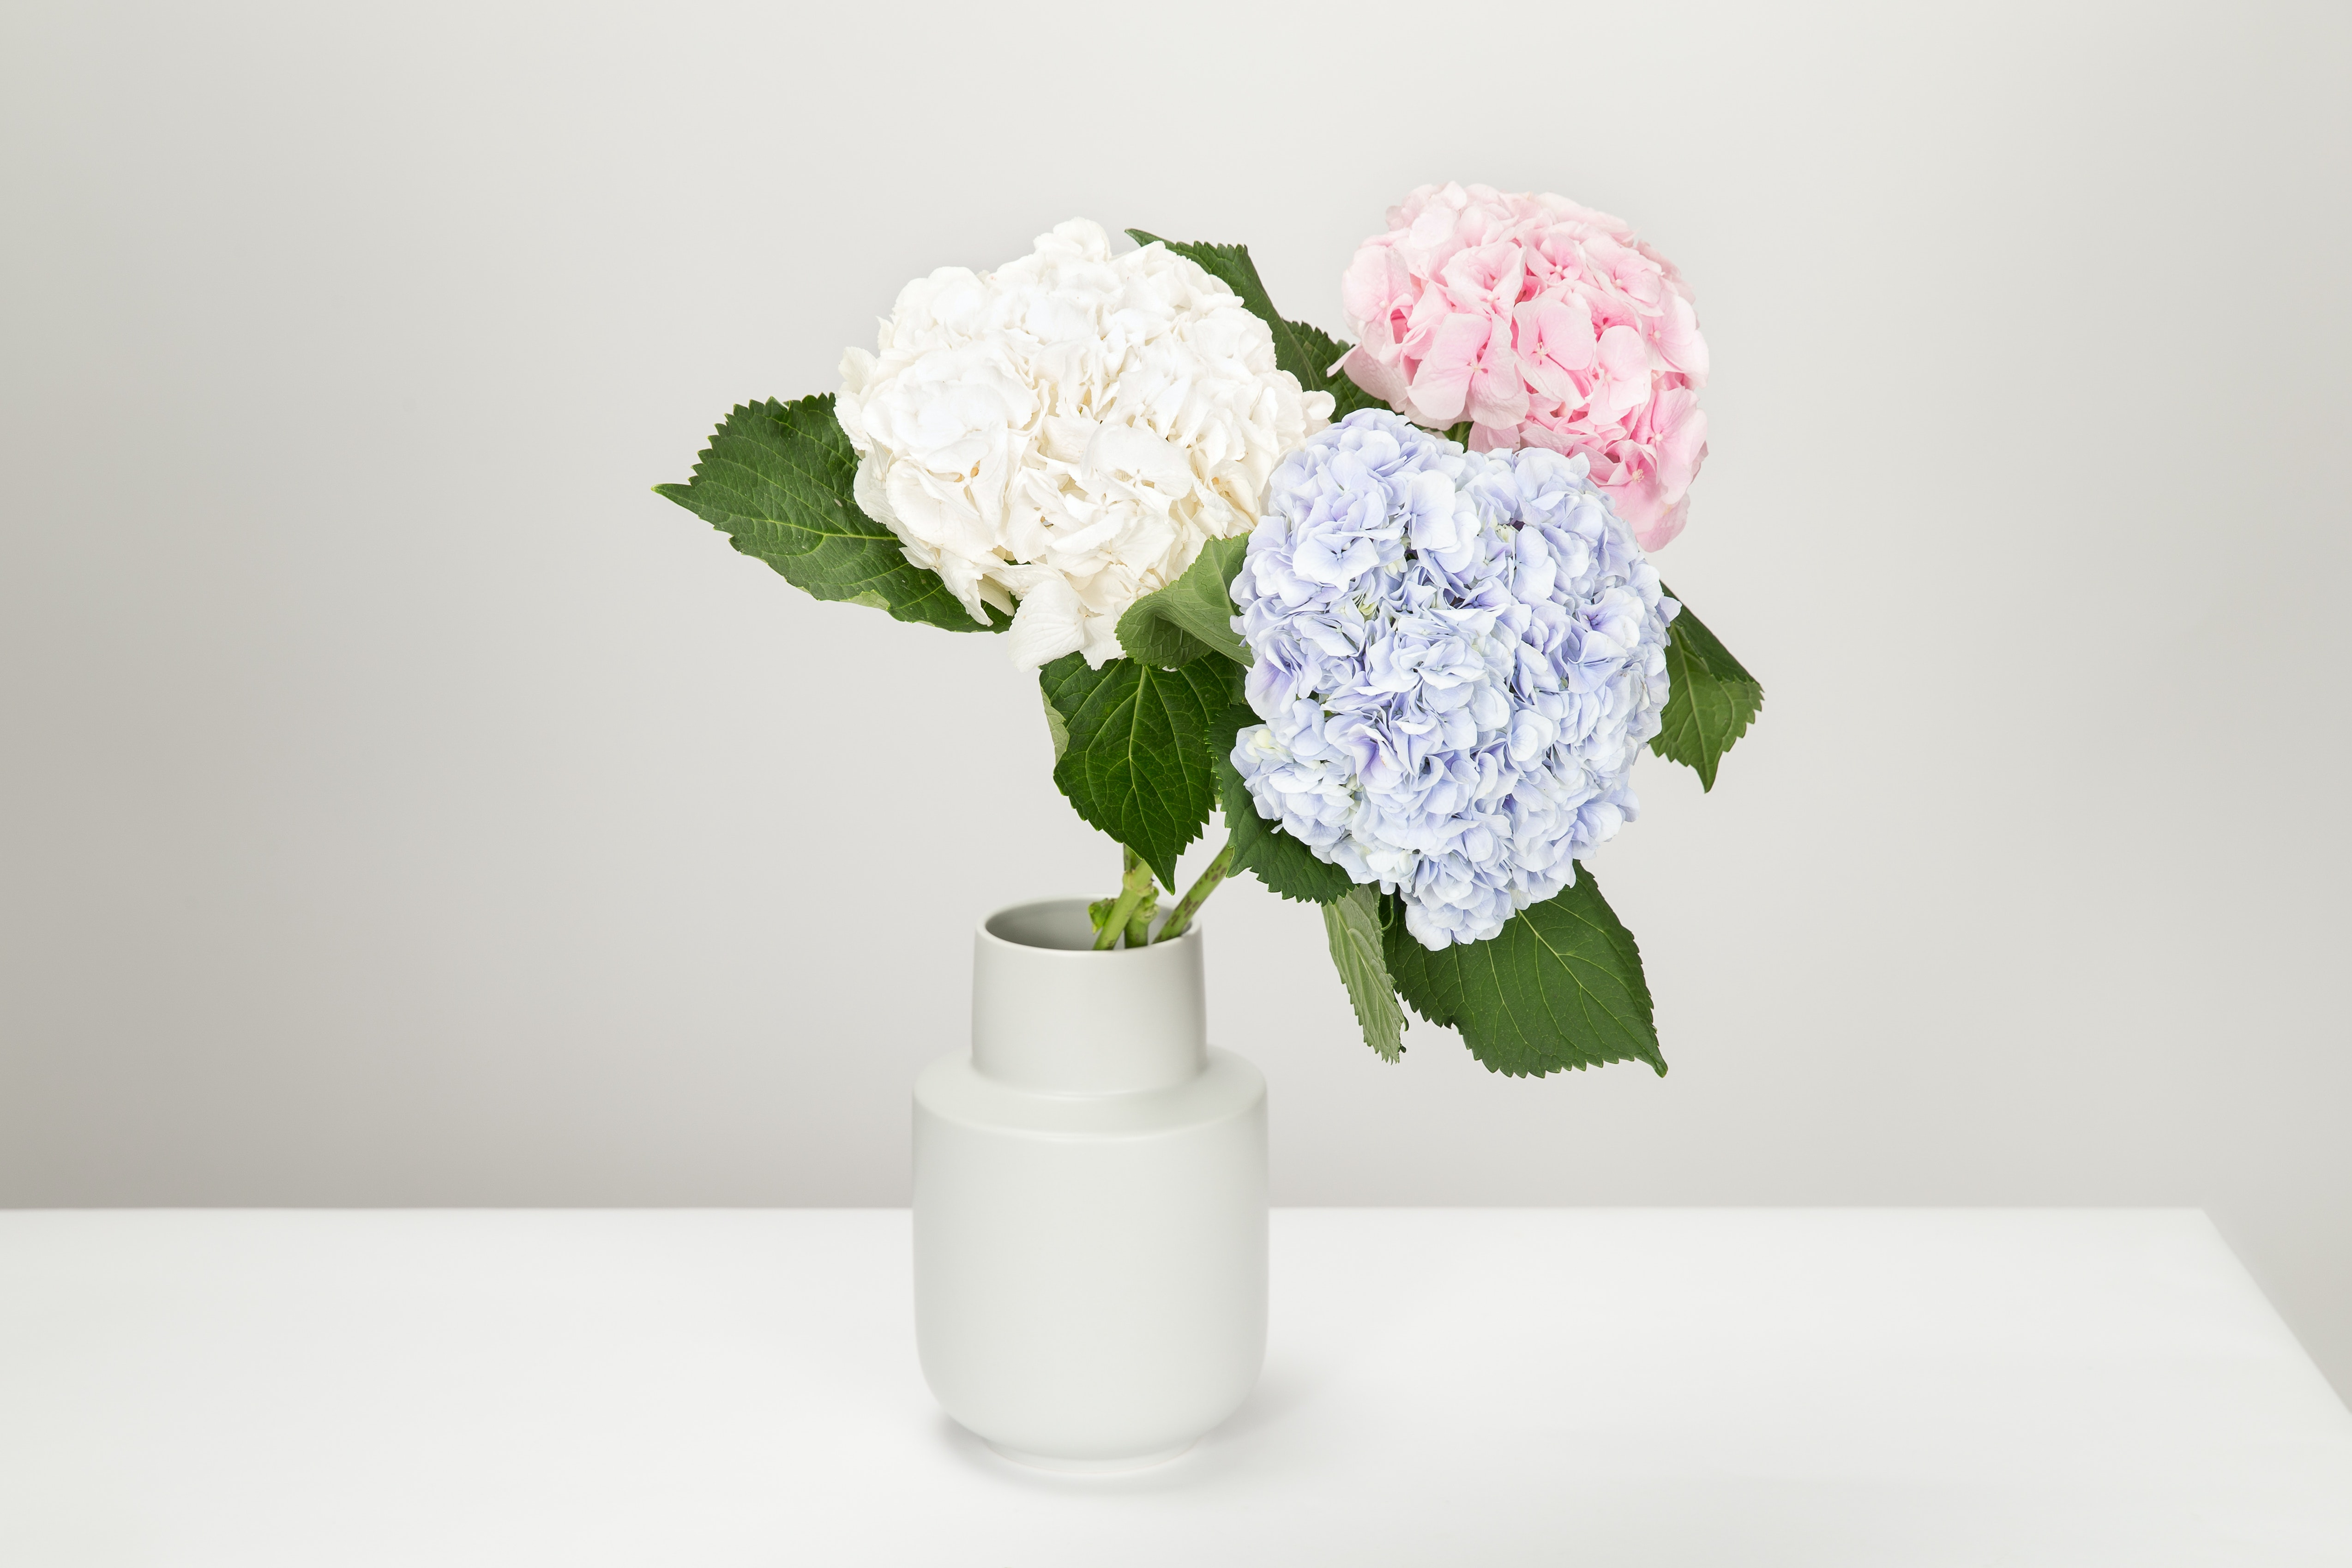 Pexels & Three White Blue and Pink Petaled Flowers in White Vase · Free ...